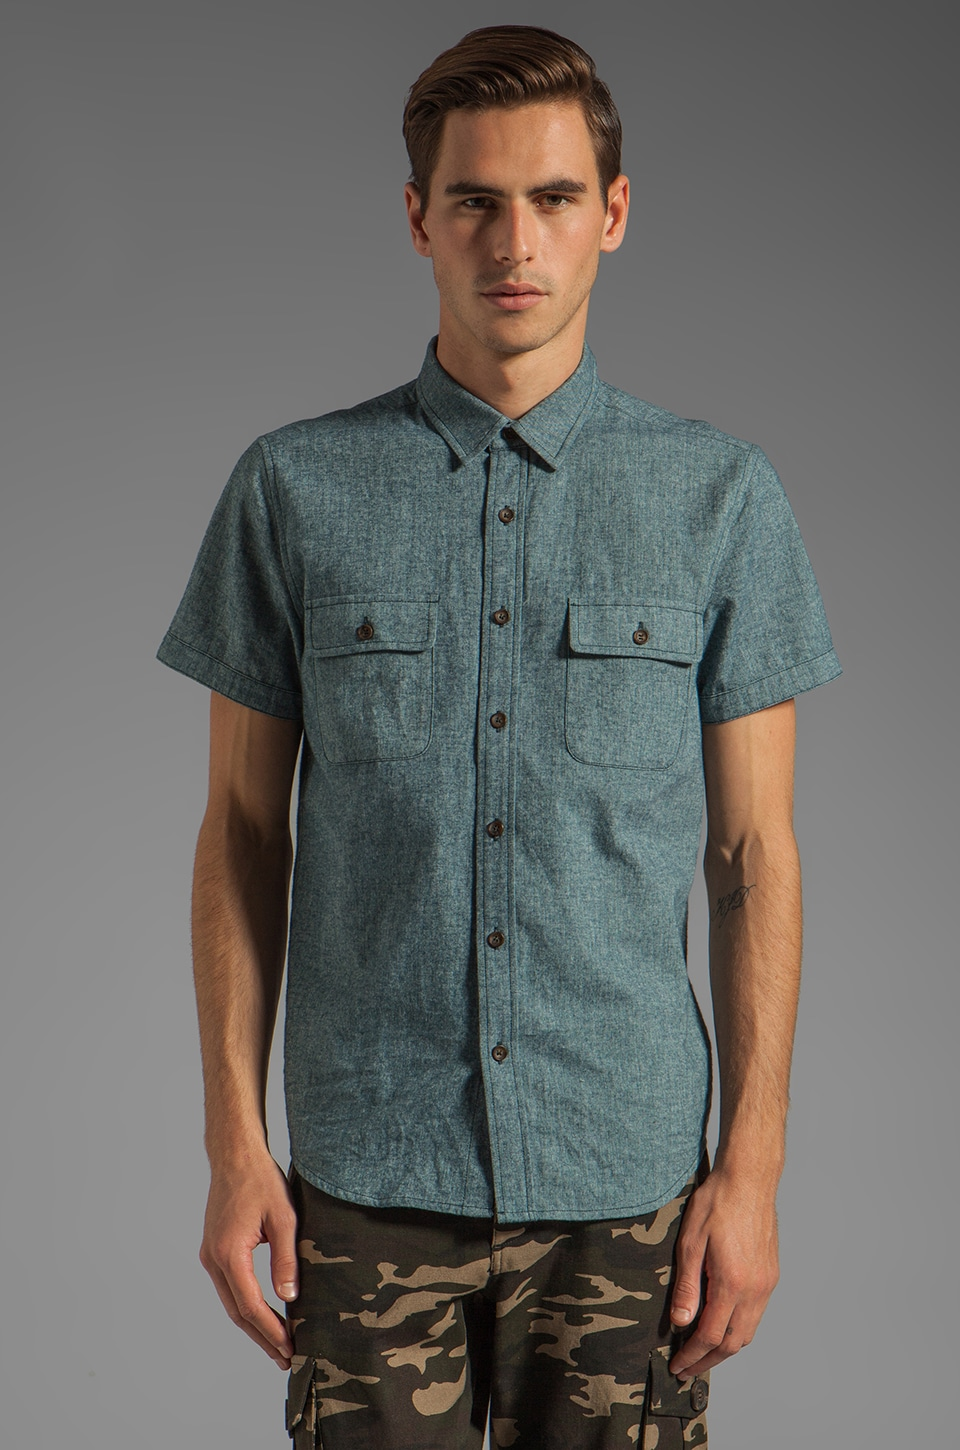 TOVAR Albert Button Up in Teal